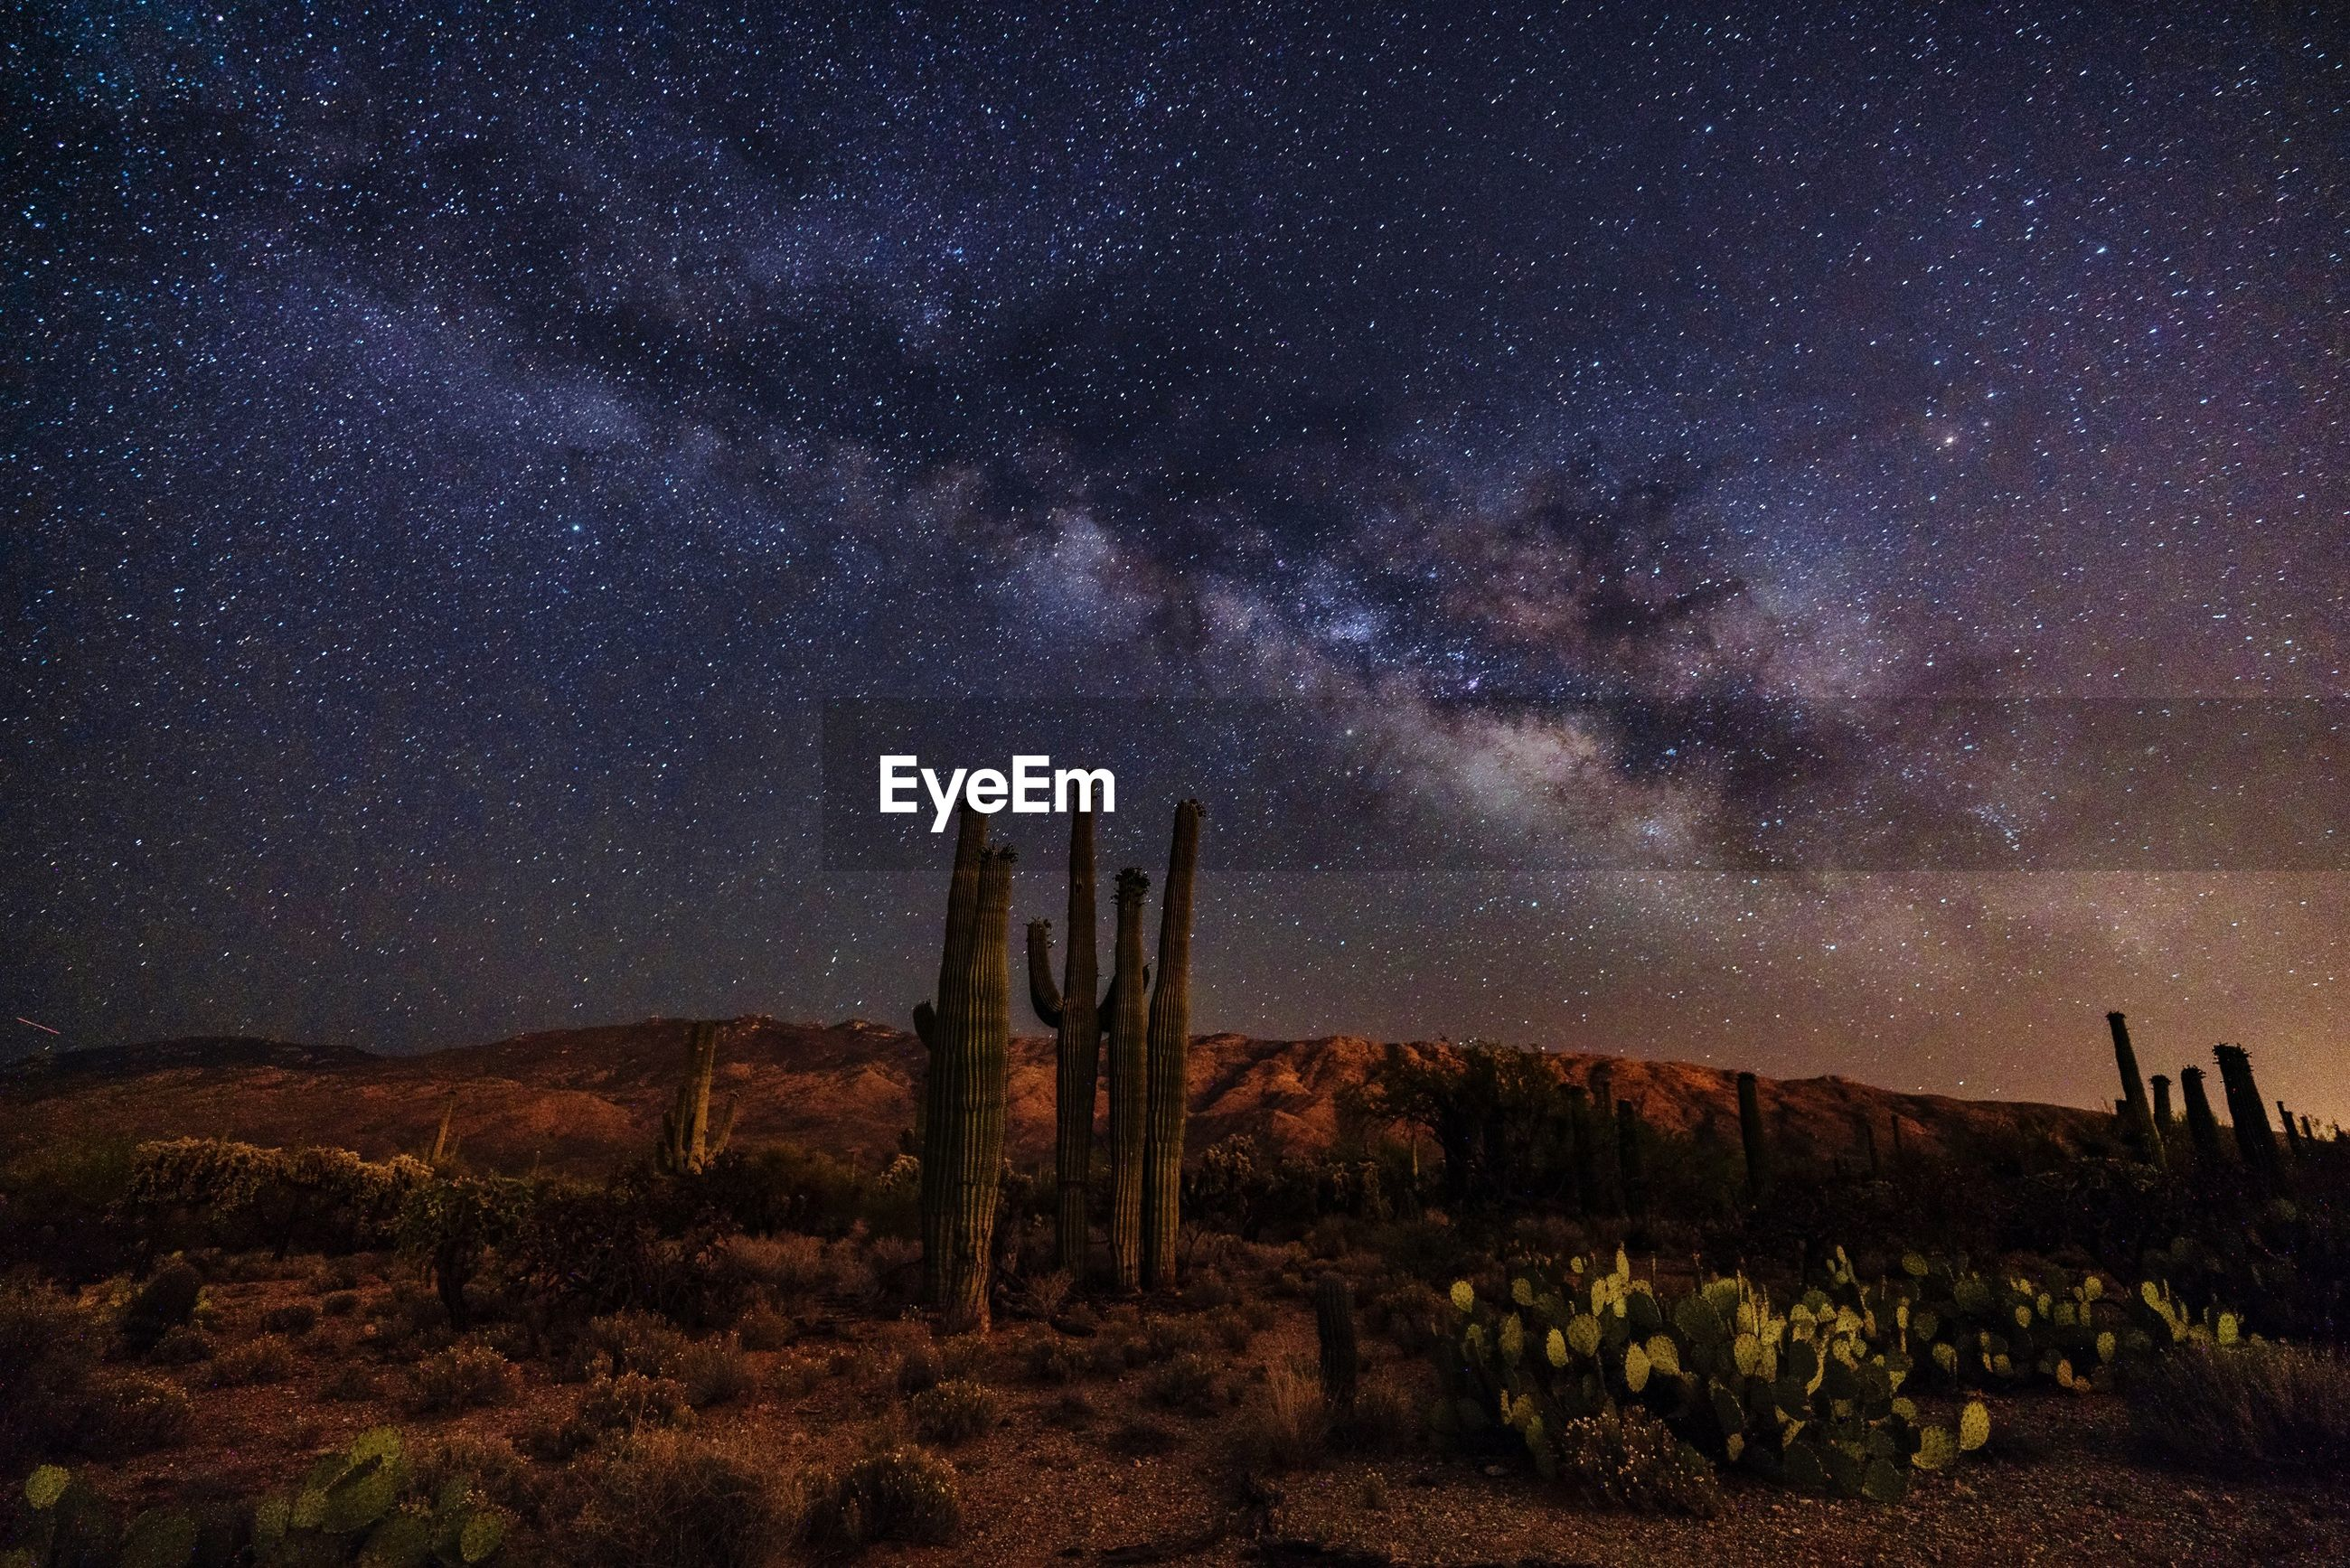 Cactus growing on field against star field sky at night